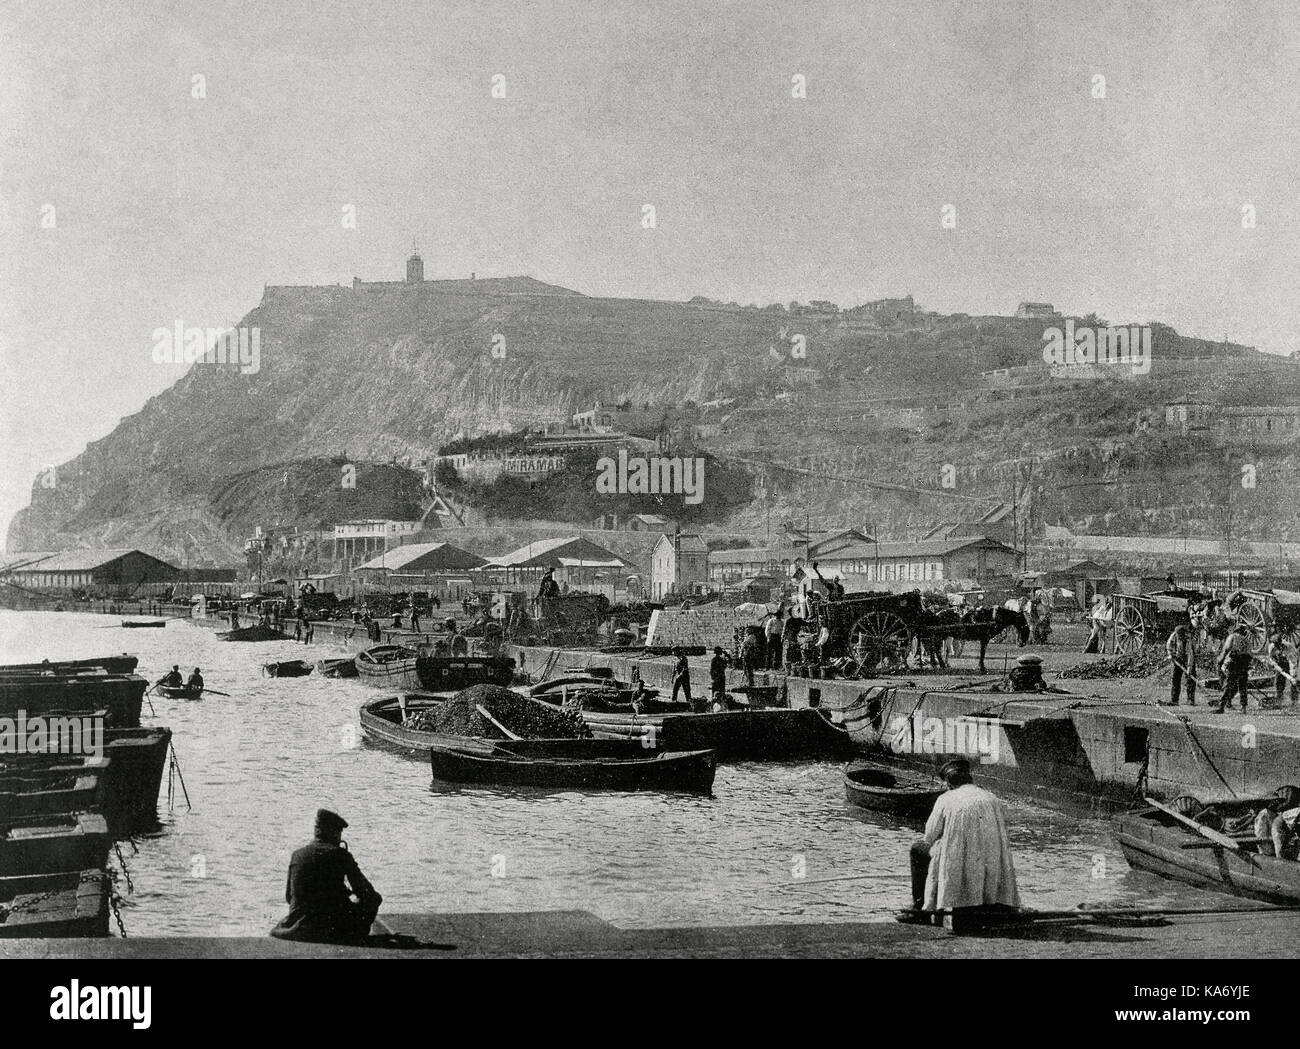 Spain. Catalonia. Barcelona. Coal's pier and Montjuic's Mountain in the background. Late 19th century. Photography. - Stock Image